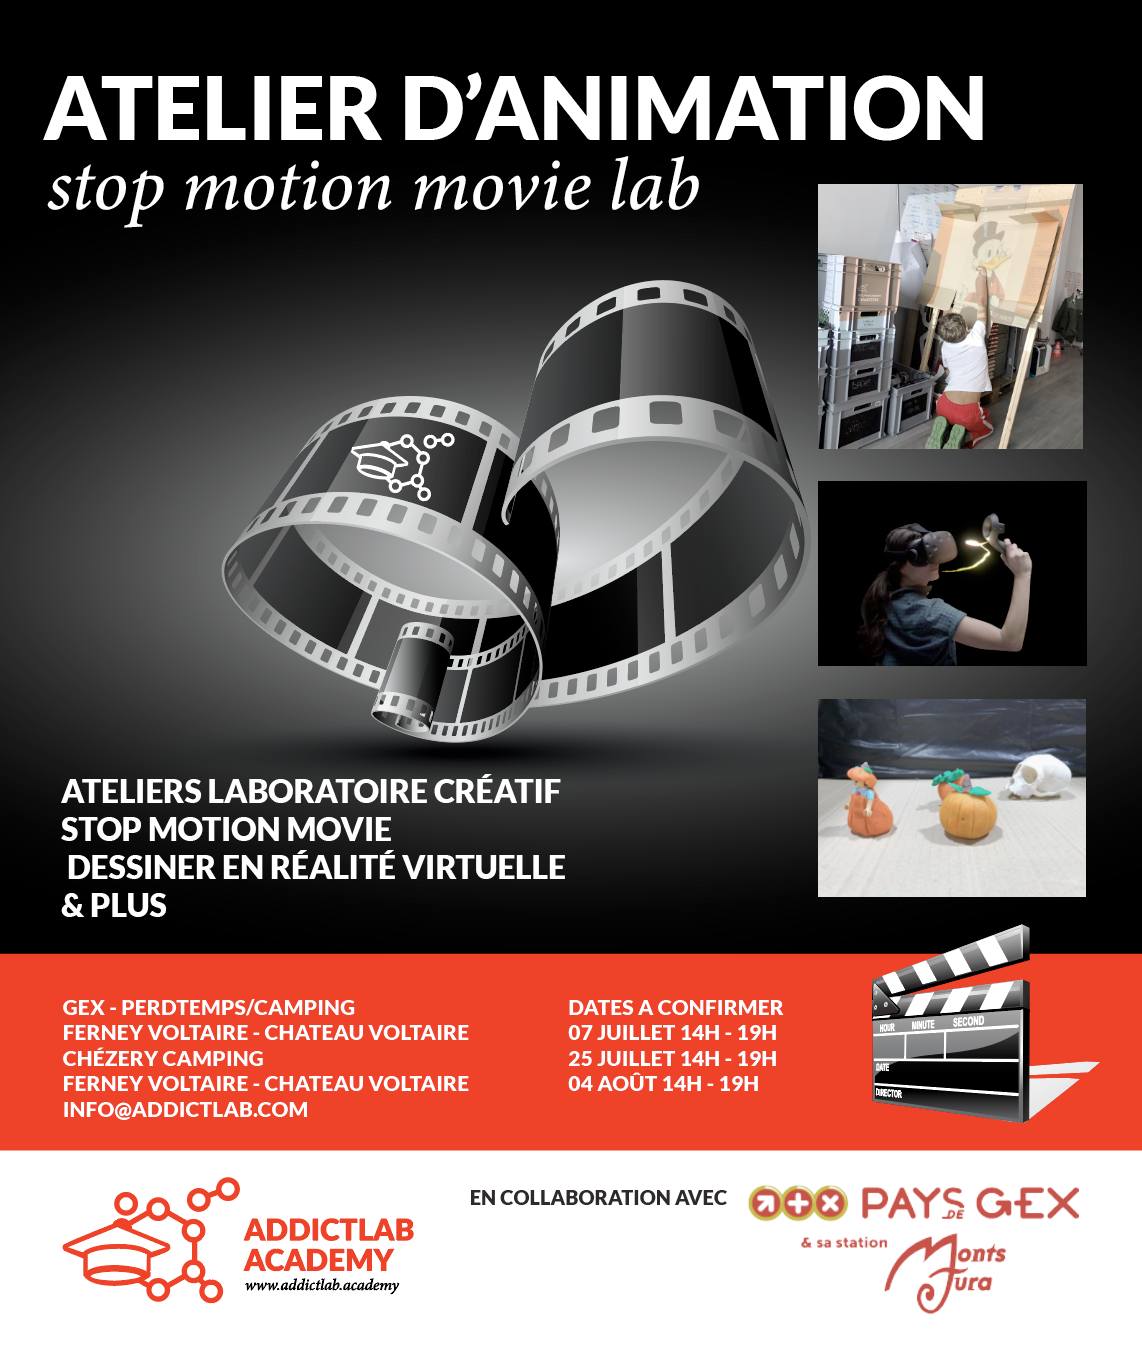 Ateliers d'animation – Addictlab collaborates with Pays de Gex Tourism